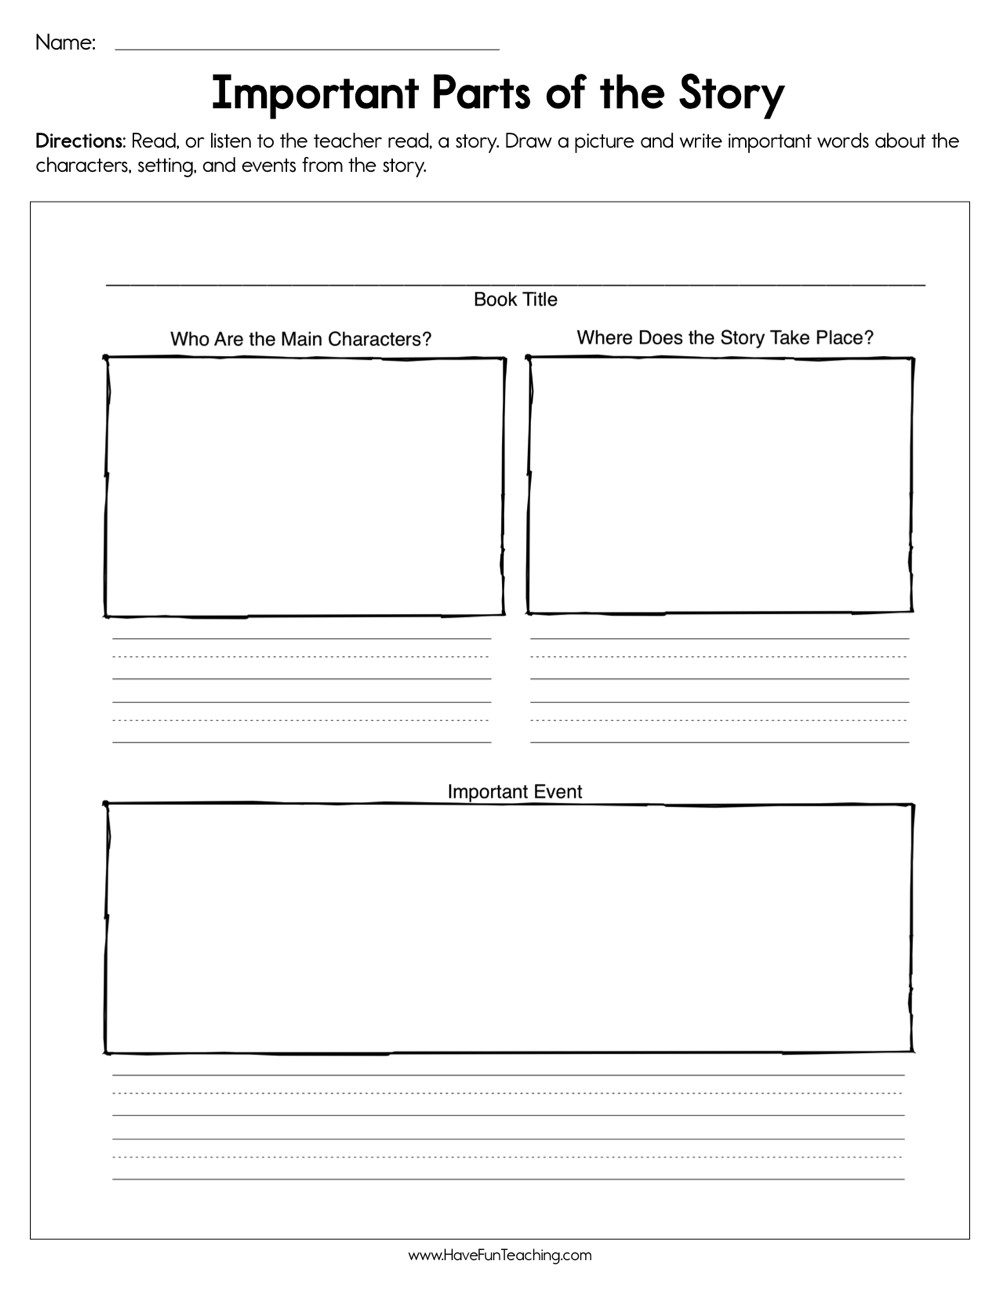 Elements Of A Story Worksheet Important Parts Of the Story Worksheet